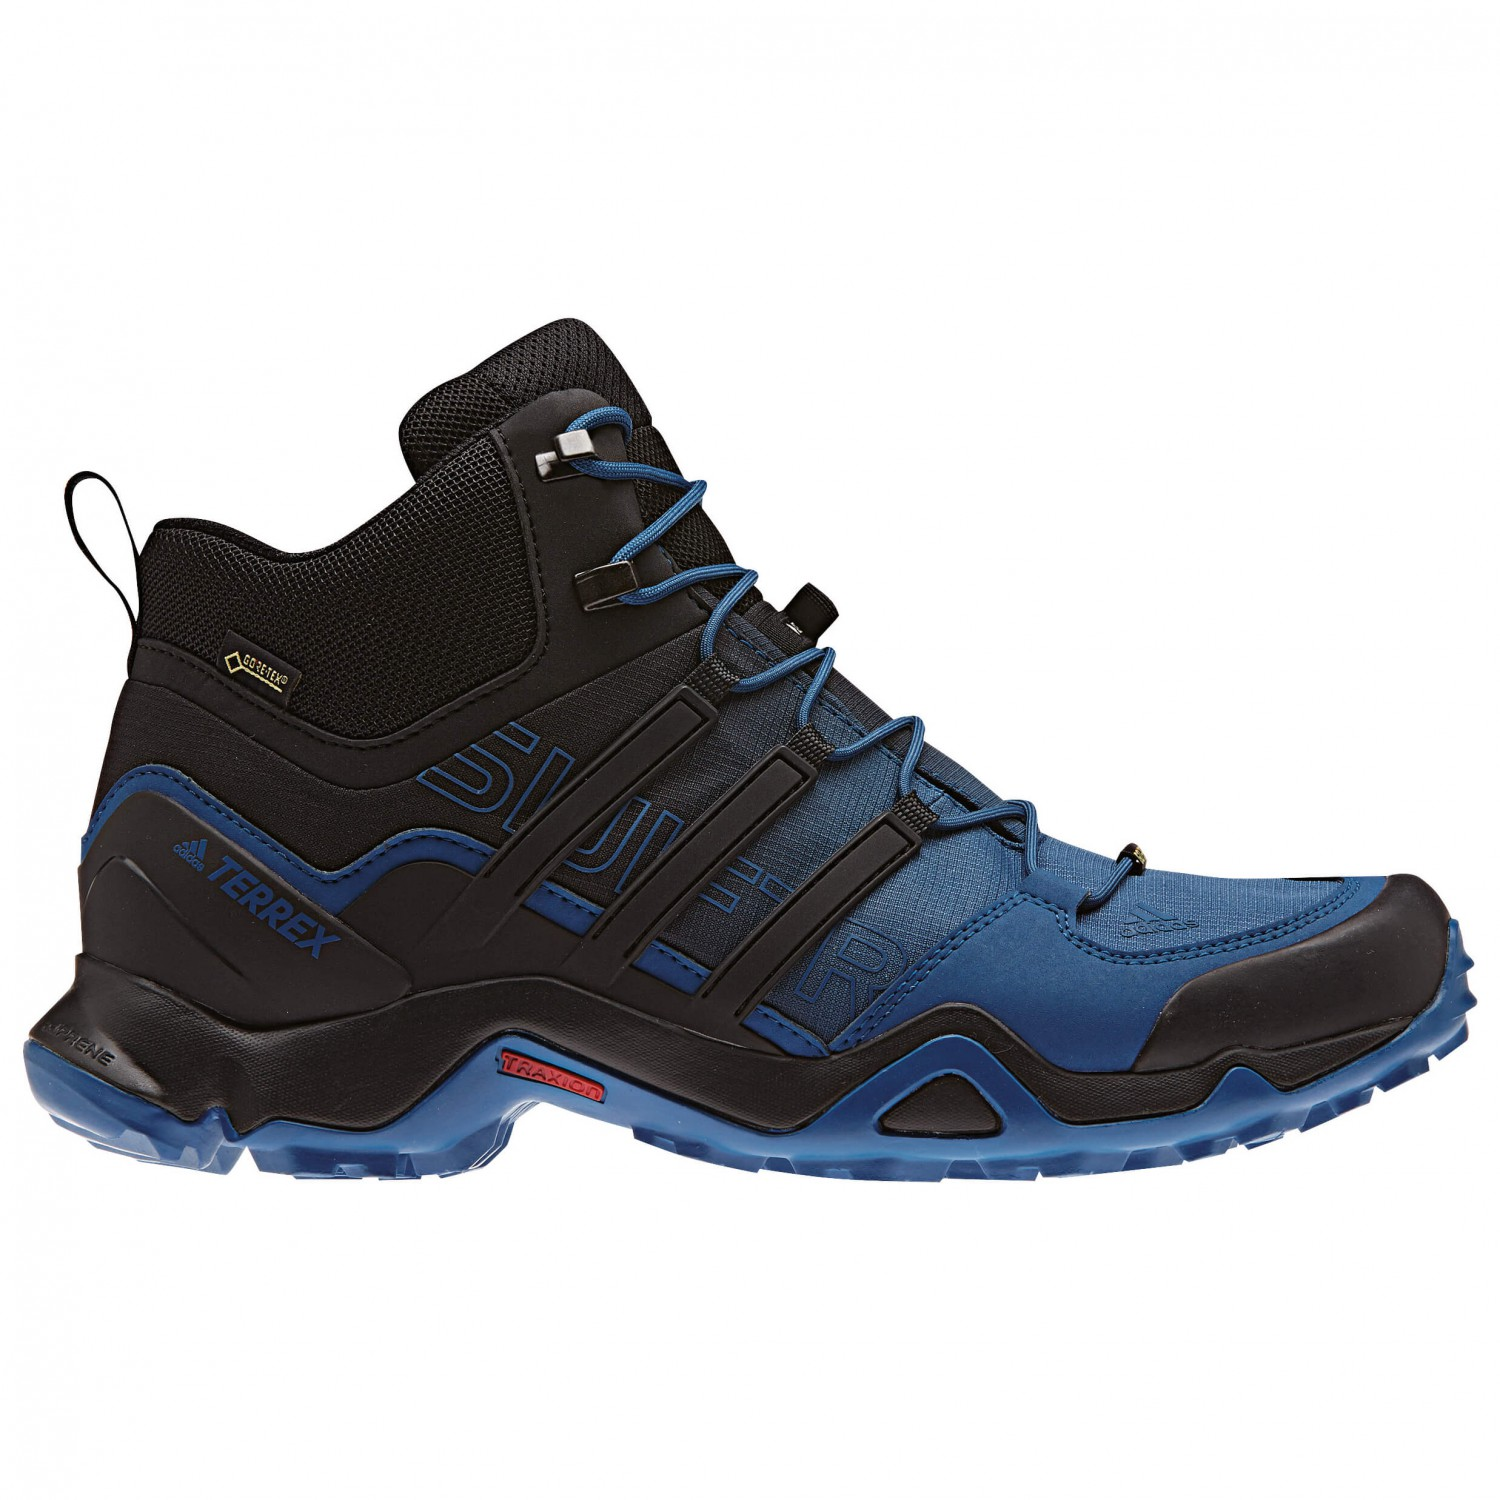 51db34e0f Adidas Terrex Swift R Mid GTX - Walking Boots Men s